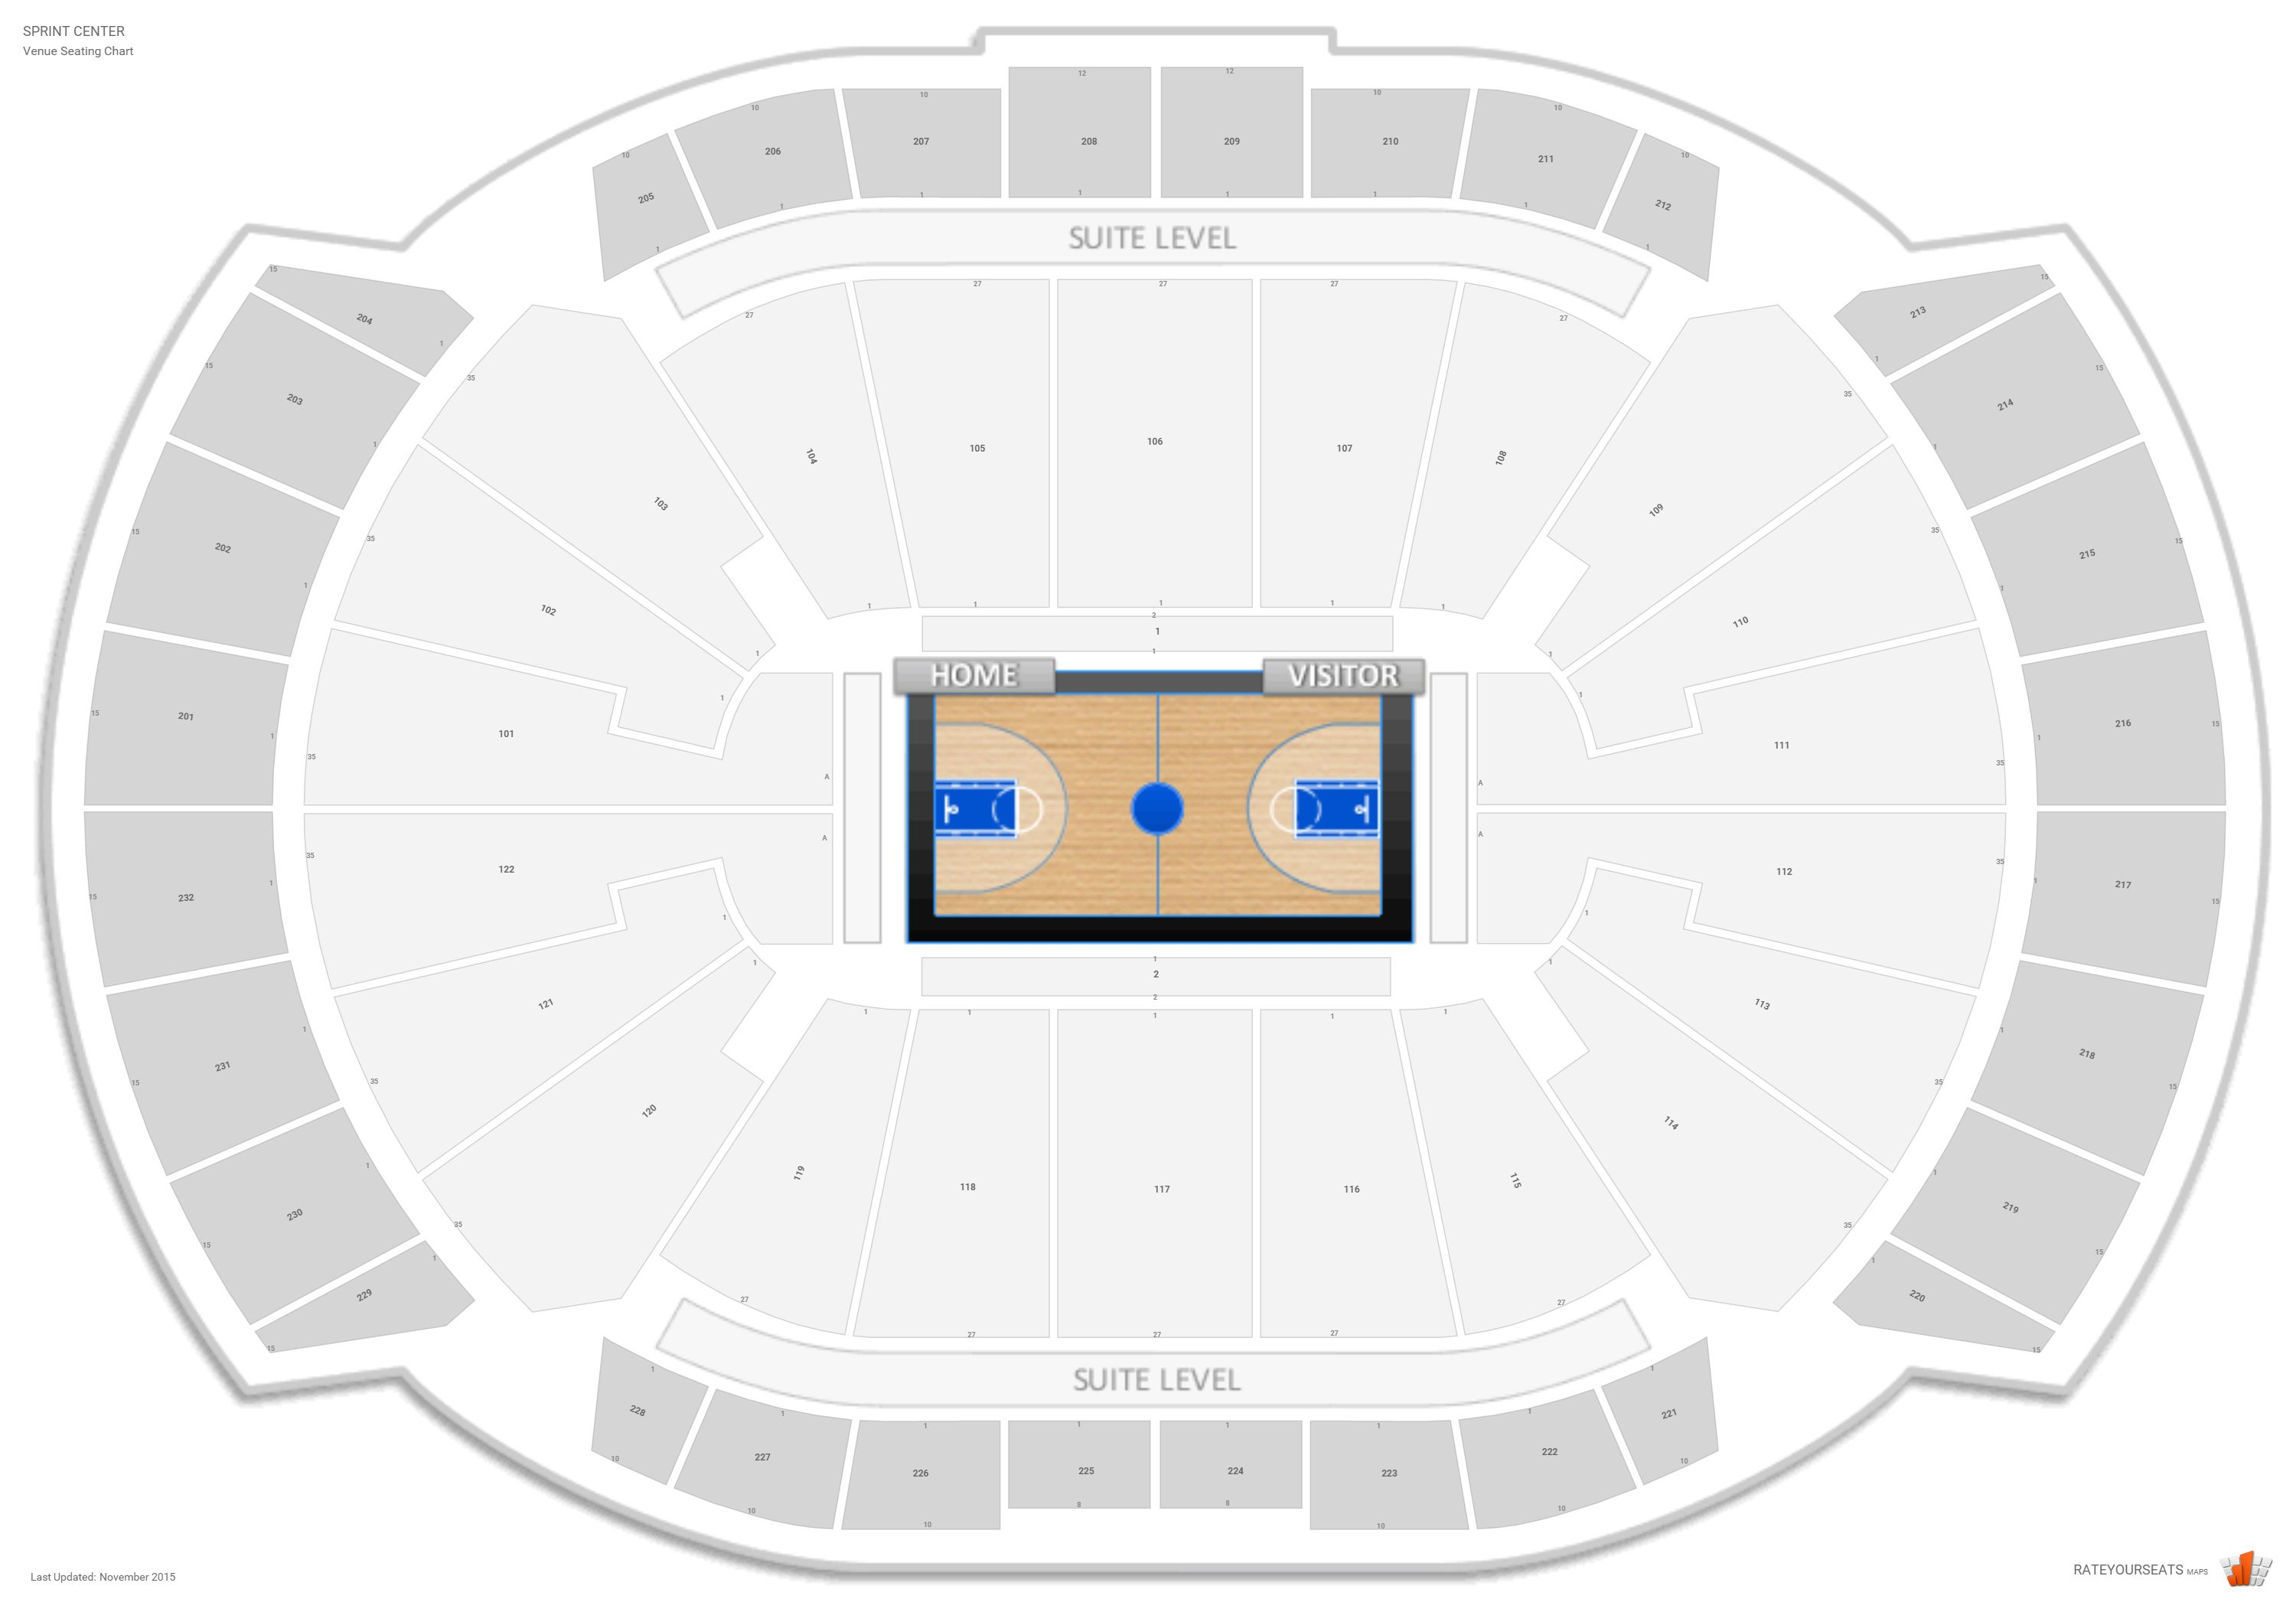 Sprint Center Seating Chart With Row Numbers